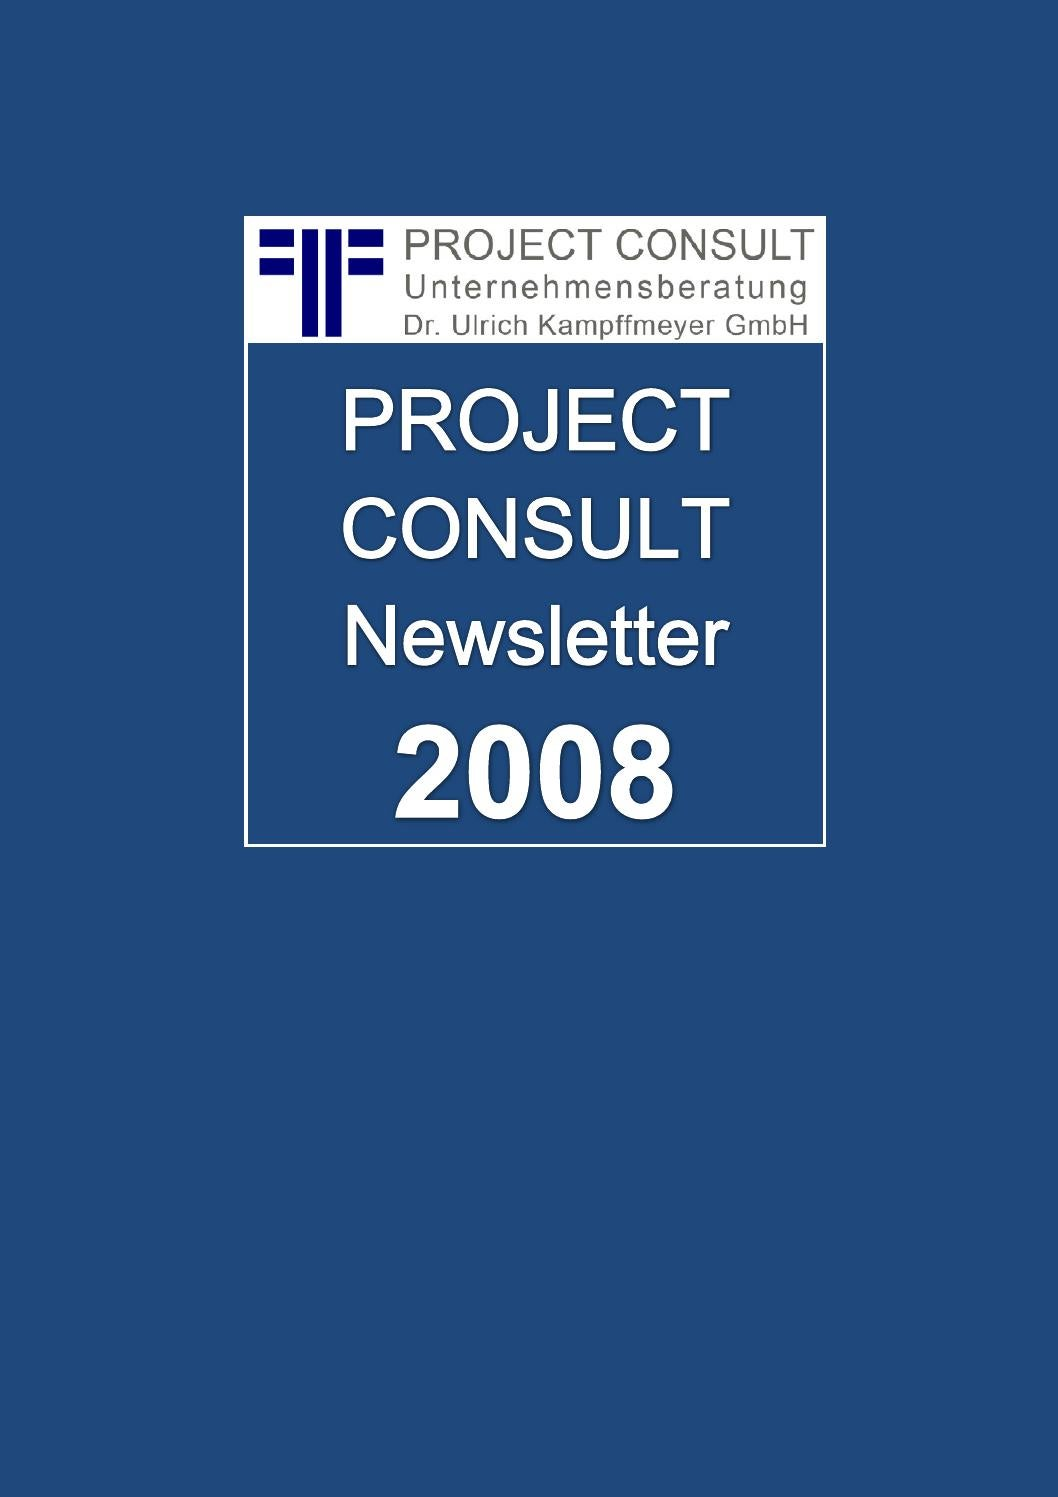 DE] PROJECT CONSULT Newsletter 2008 | PROJECT CONSULT ...